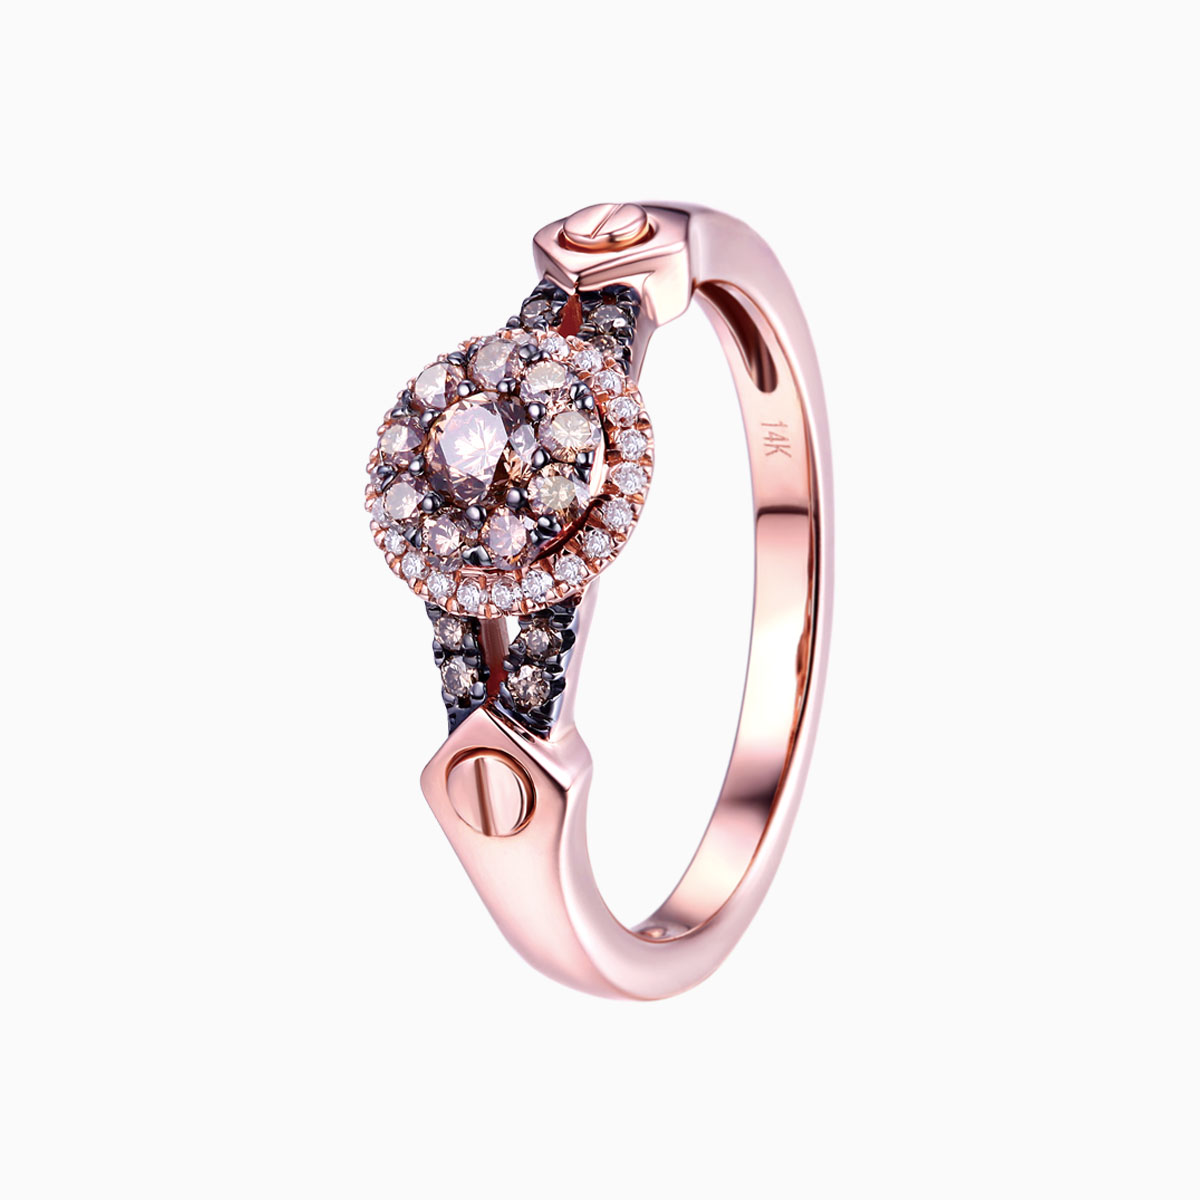 R17592BRN- 14K Rose Gold Diamond Ring, 0.45 TCW